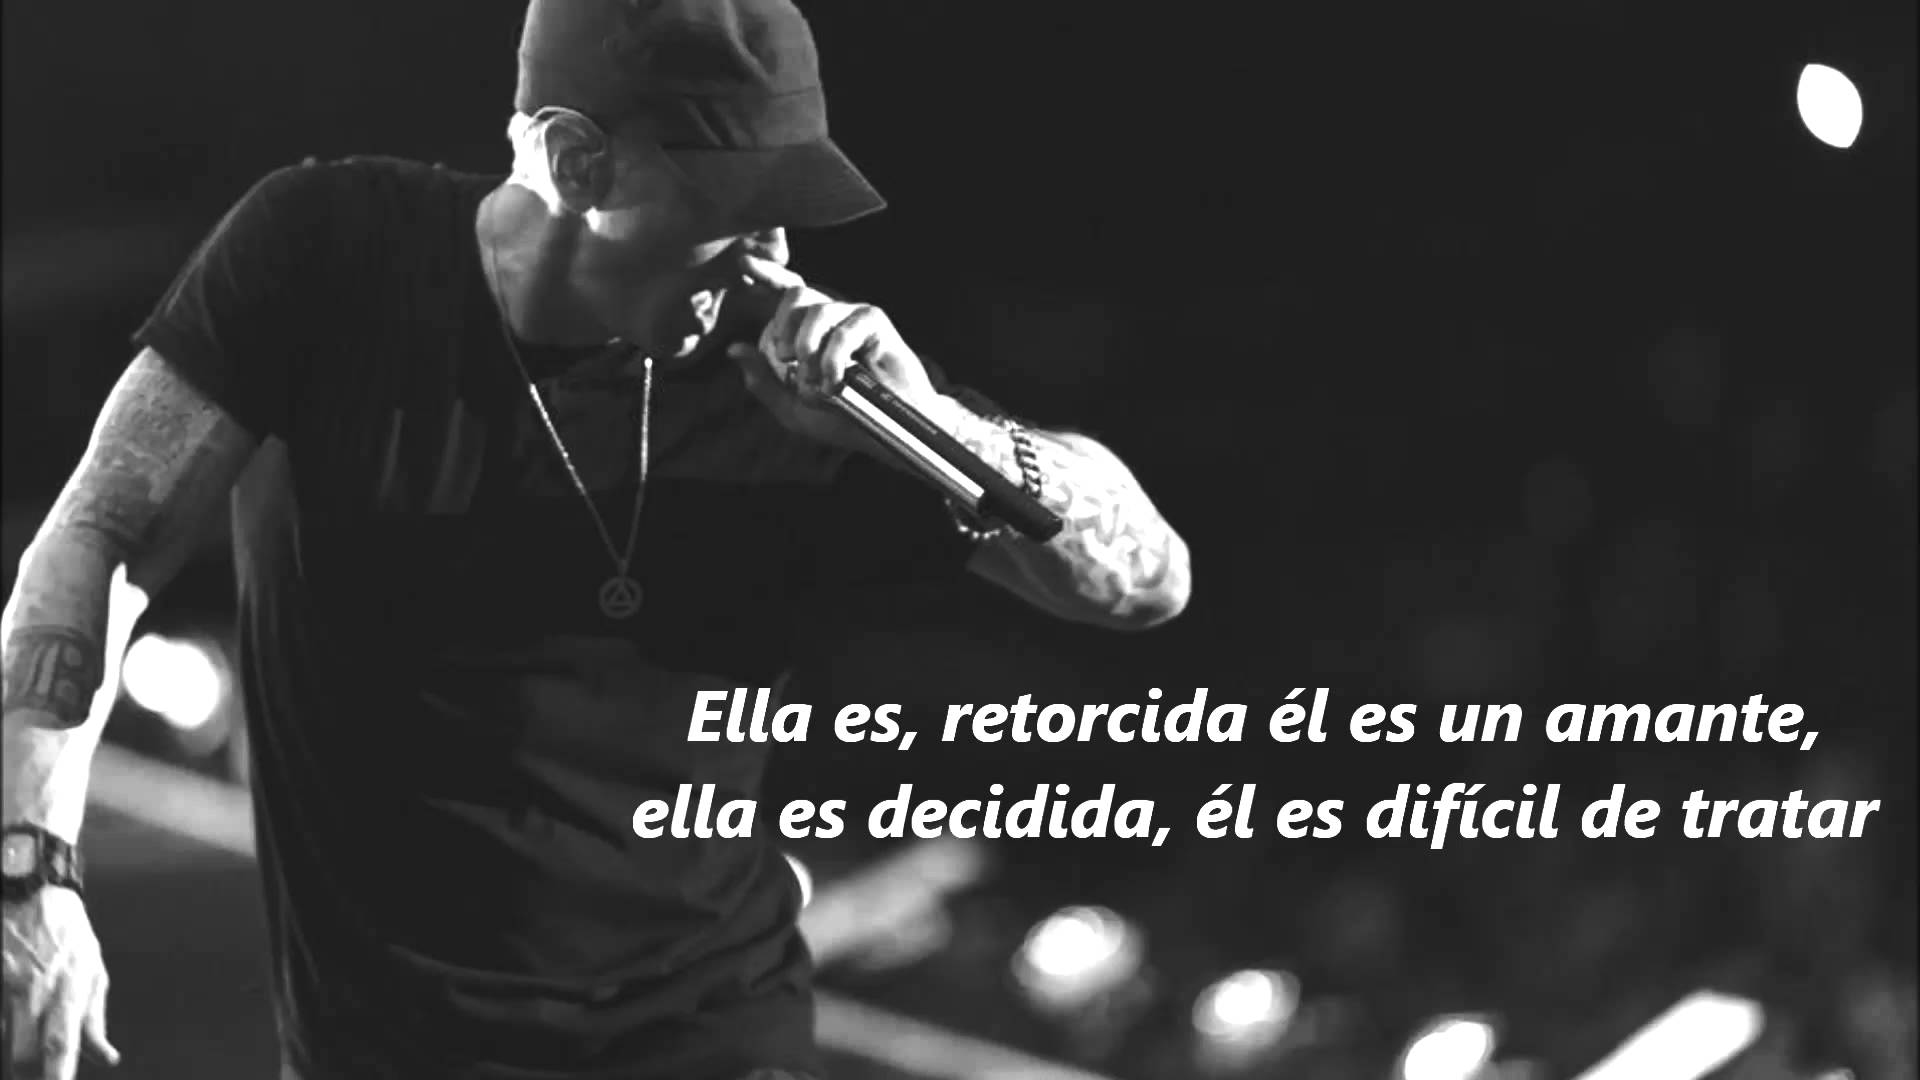 Eminem Ft Skylar Grey & Yelawolf – Twisted (Sub. Español)